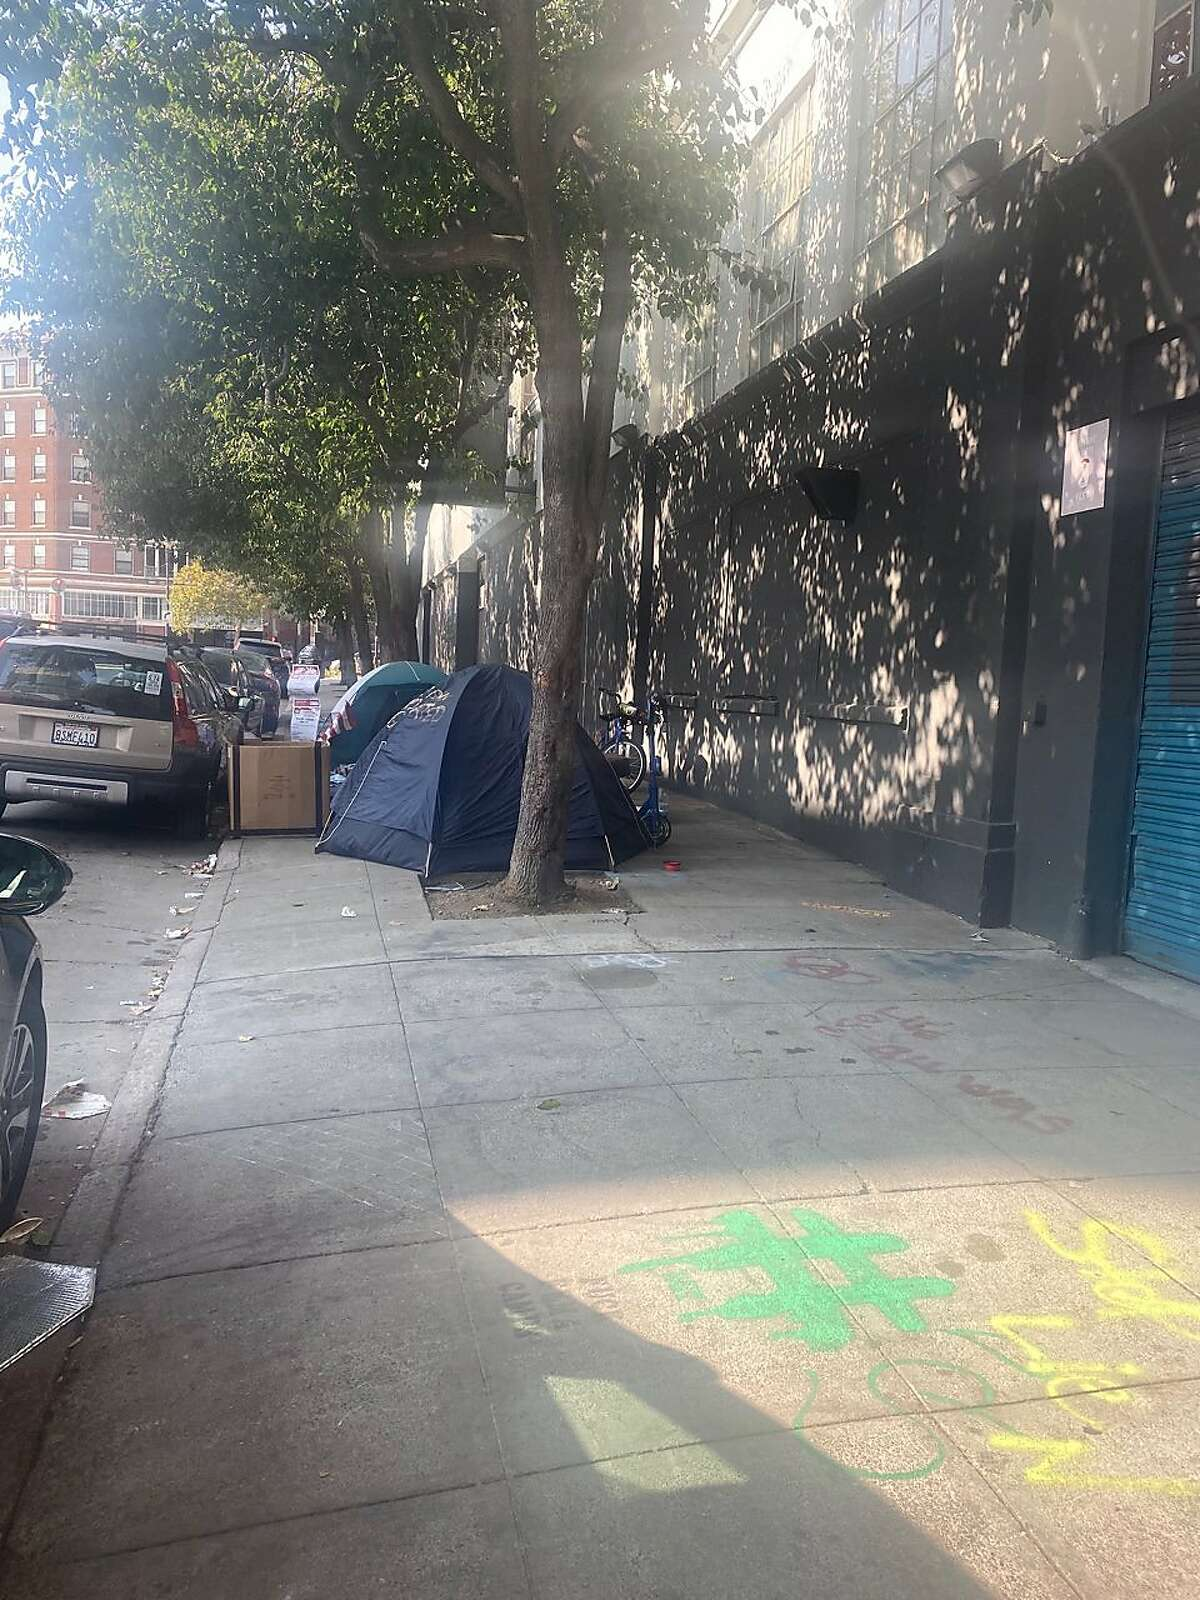 Tents have returned outside of 10 South Van Ness Ave. in San Francisco after a homelessness sweep last week where people's belongings were discarded.